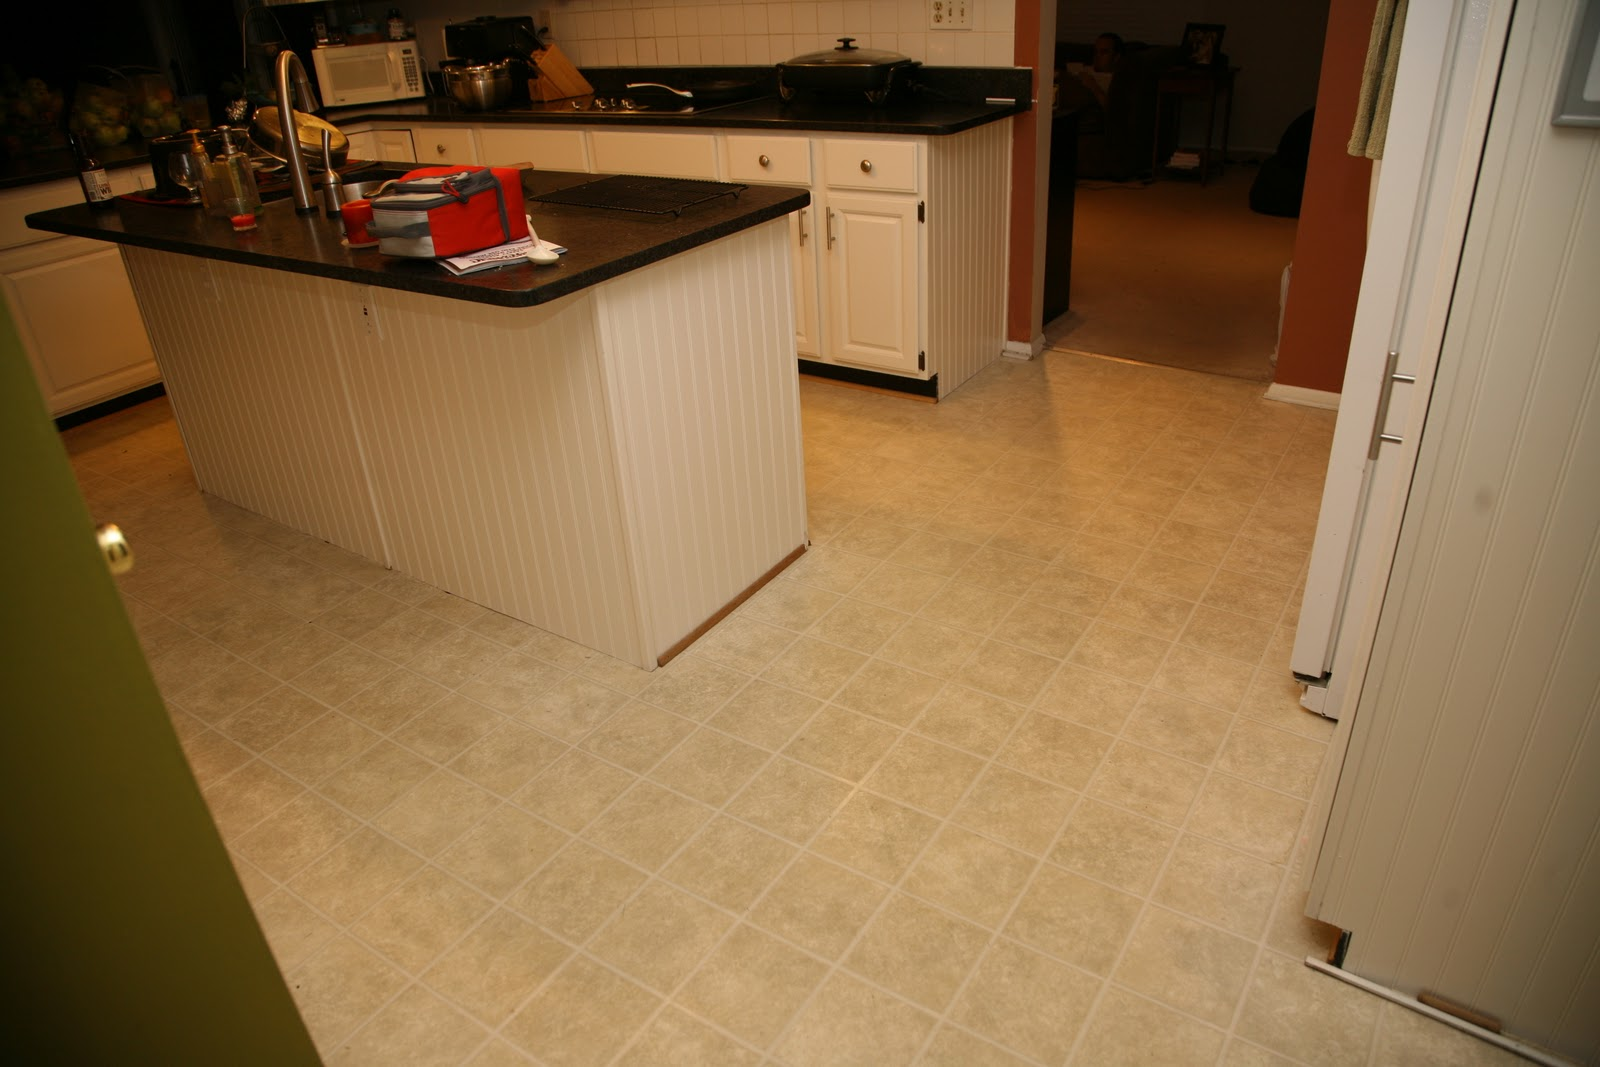 Shutter mug new kitchen floors for New kitchen floor tiles